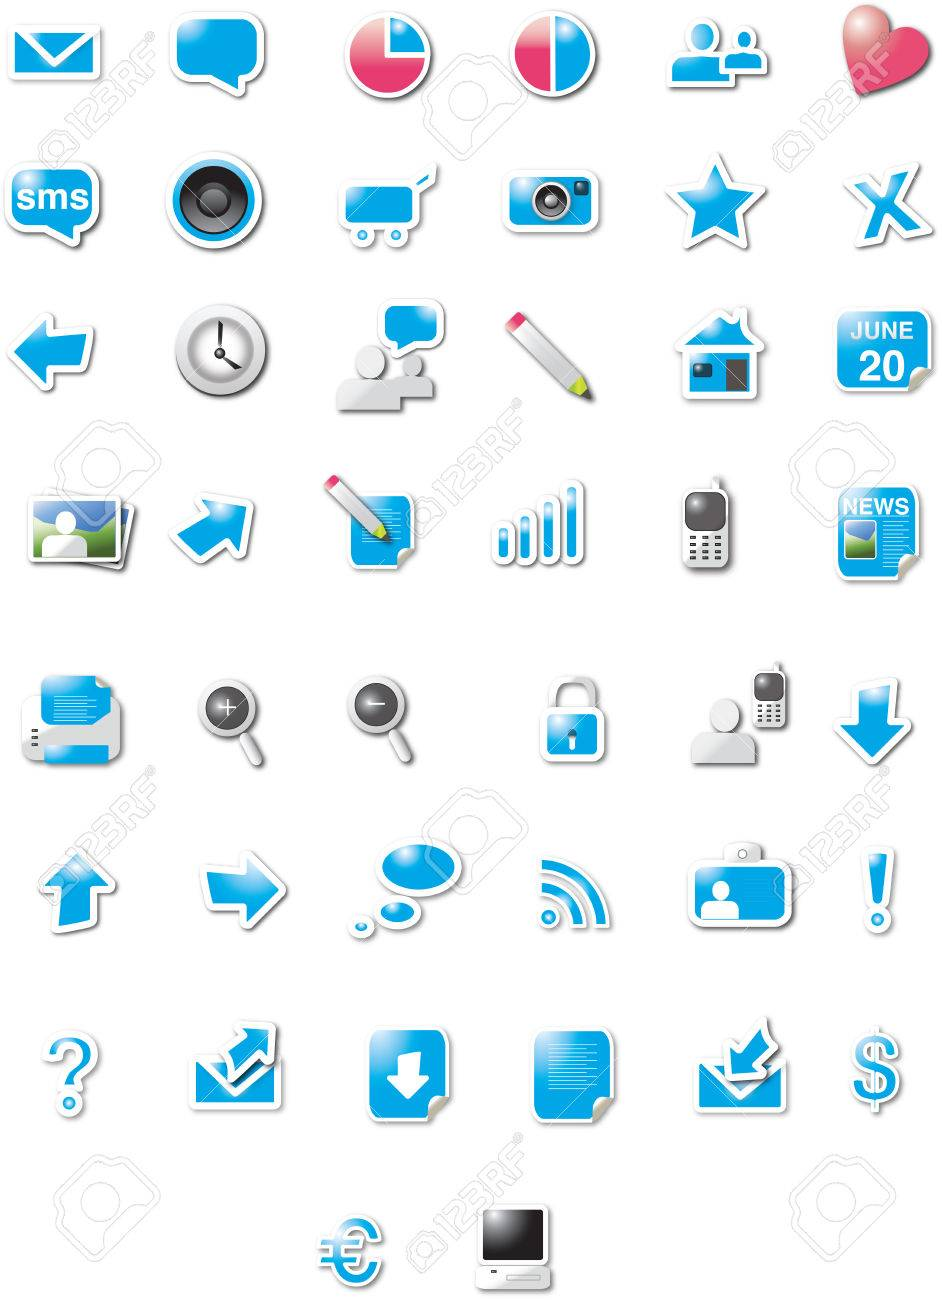 Web 20 icons royalty free cliparts vectors and stock web 20 icons stock vector 6527140 sciox Choice Image